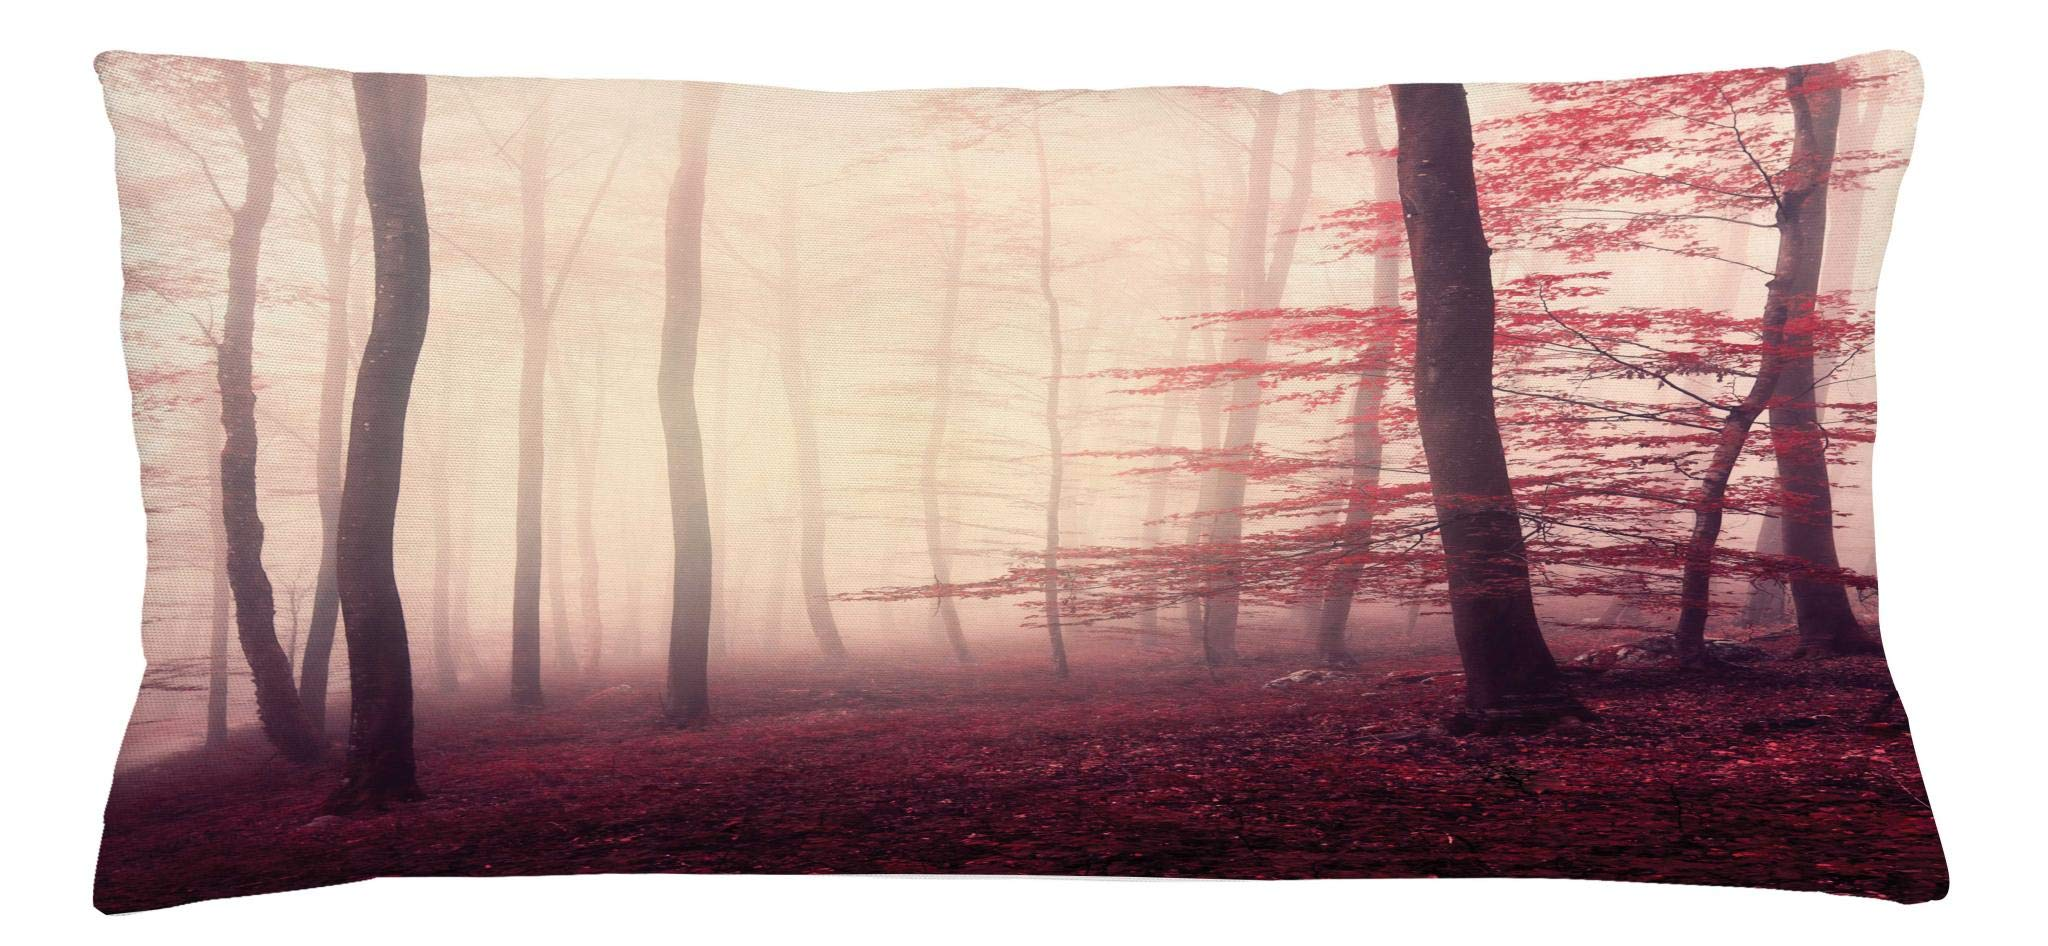 Ambesonne Woodland Throw Pillow Cushion Cover, Fantasy Marsala Color Foggy Forest Jungle Dreamy Wilderness Woods Sunlight Image, Decorative Square Accent Pillow Case, 36 X 16 Inches, Maroon Peach